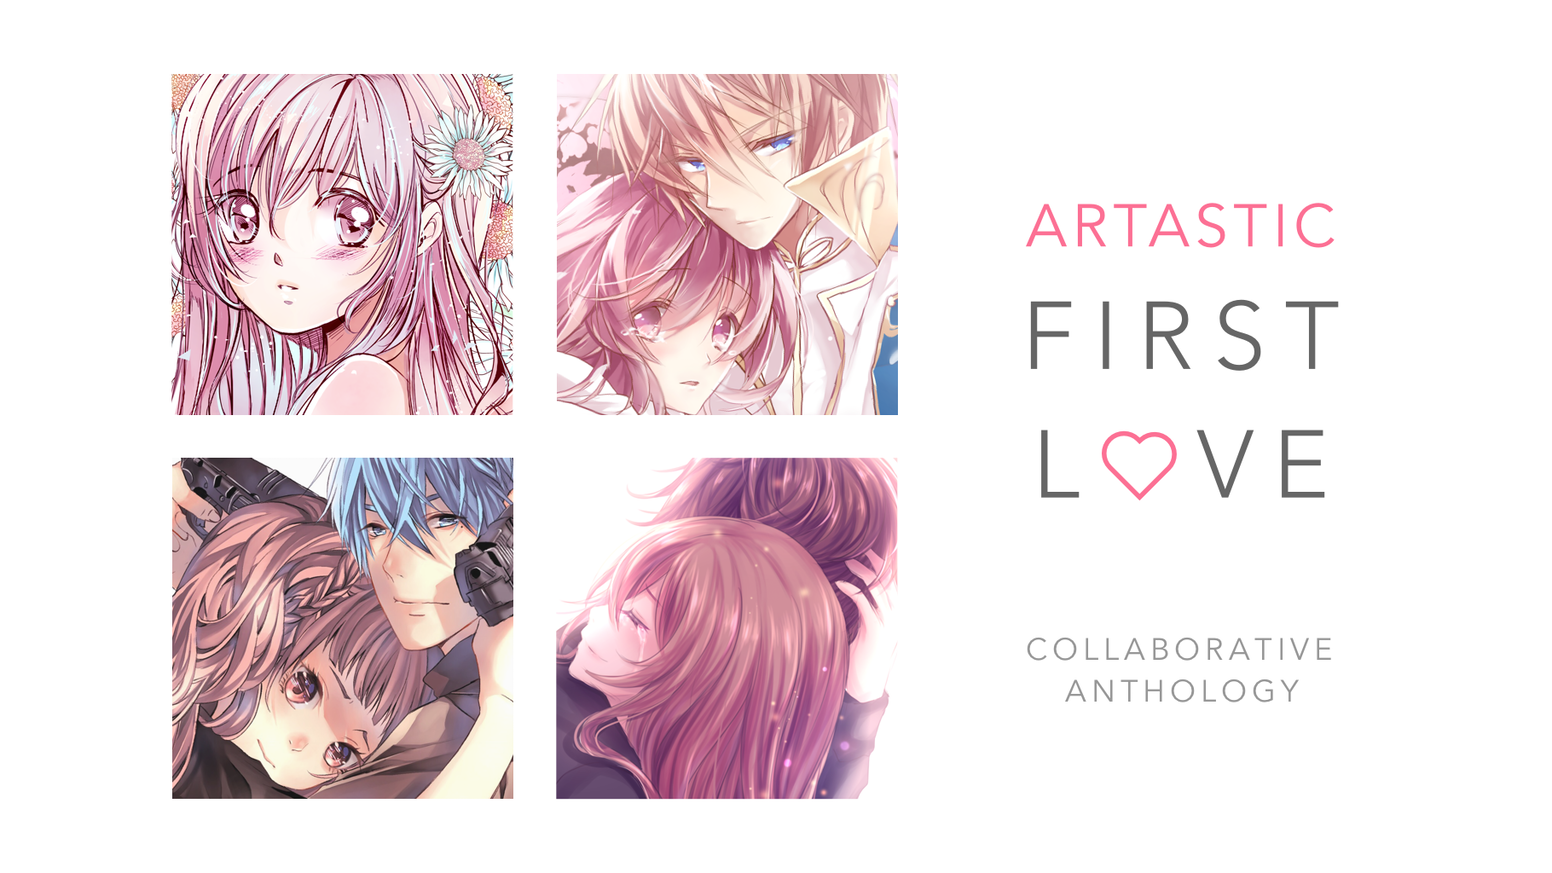 What was your first love like artastic first love features art stories